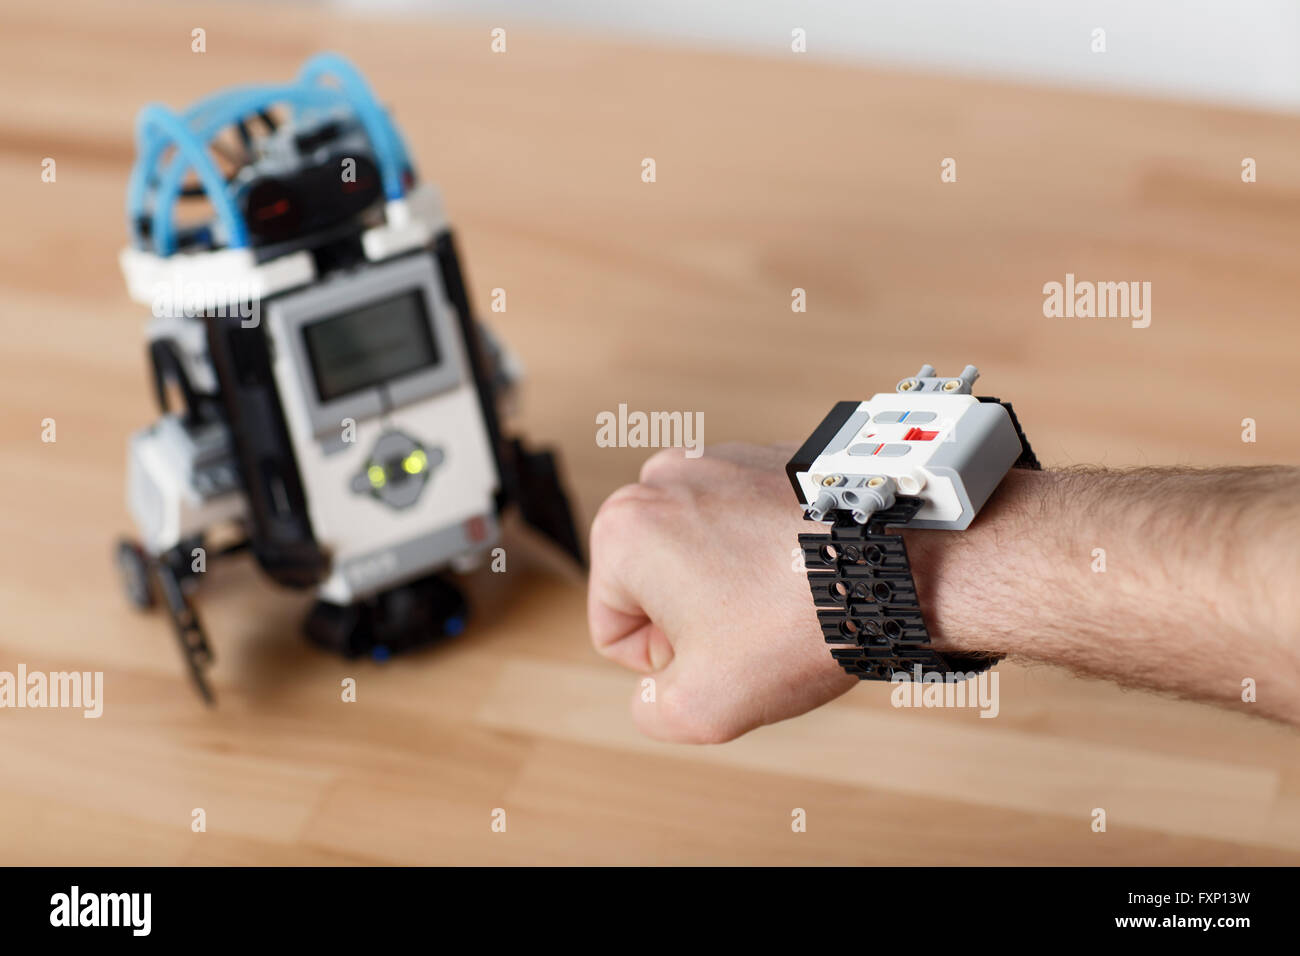 Pleasant man using robot - Stock Image